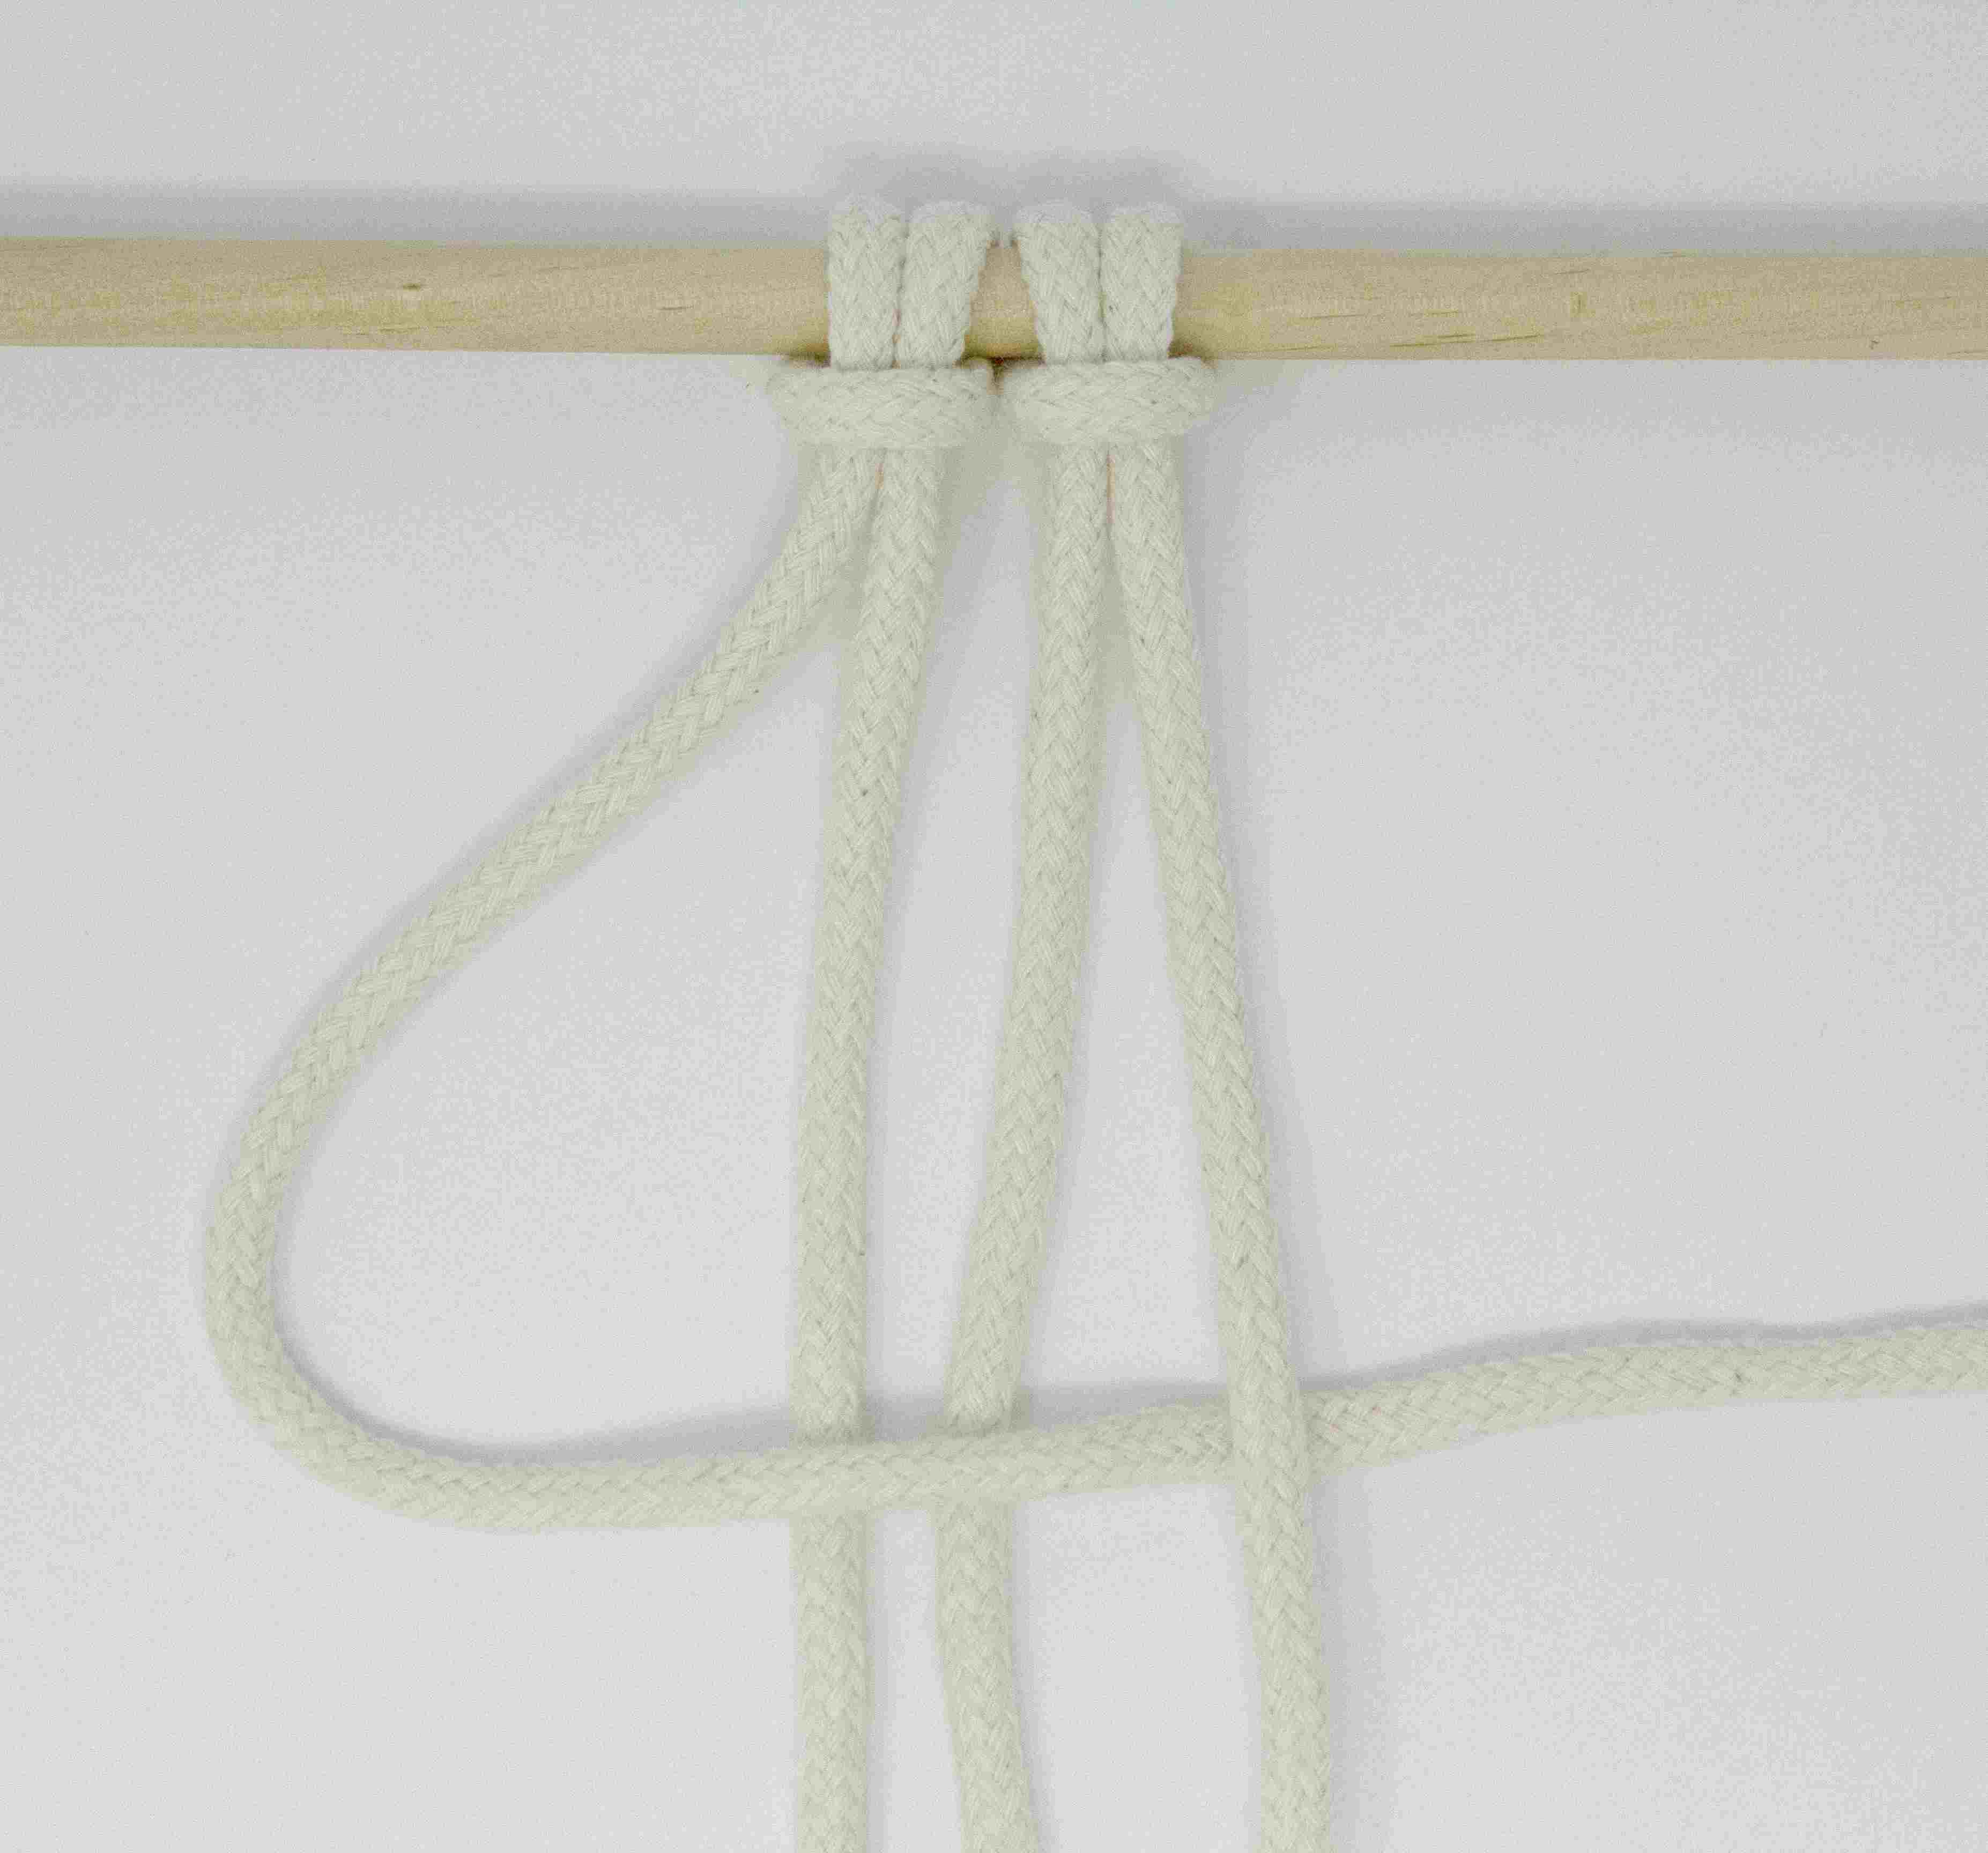 Cord 1 over cords 2 and 3 but under cord 4